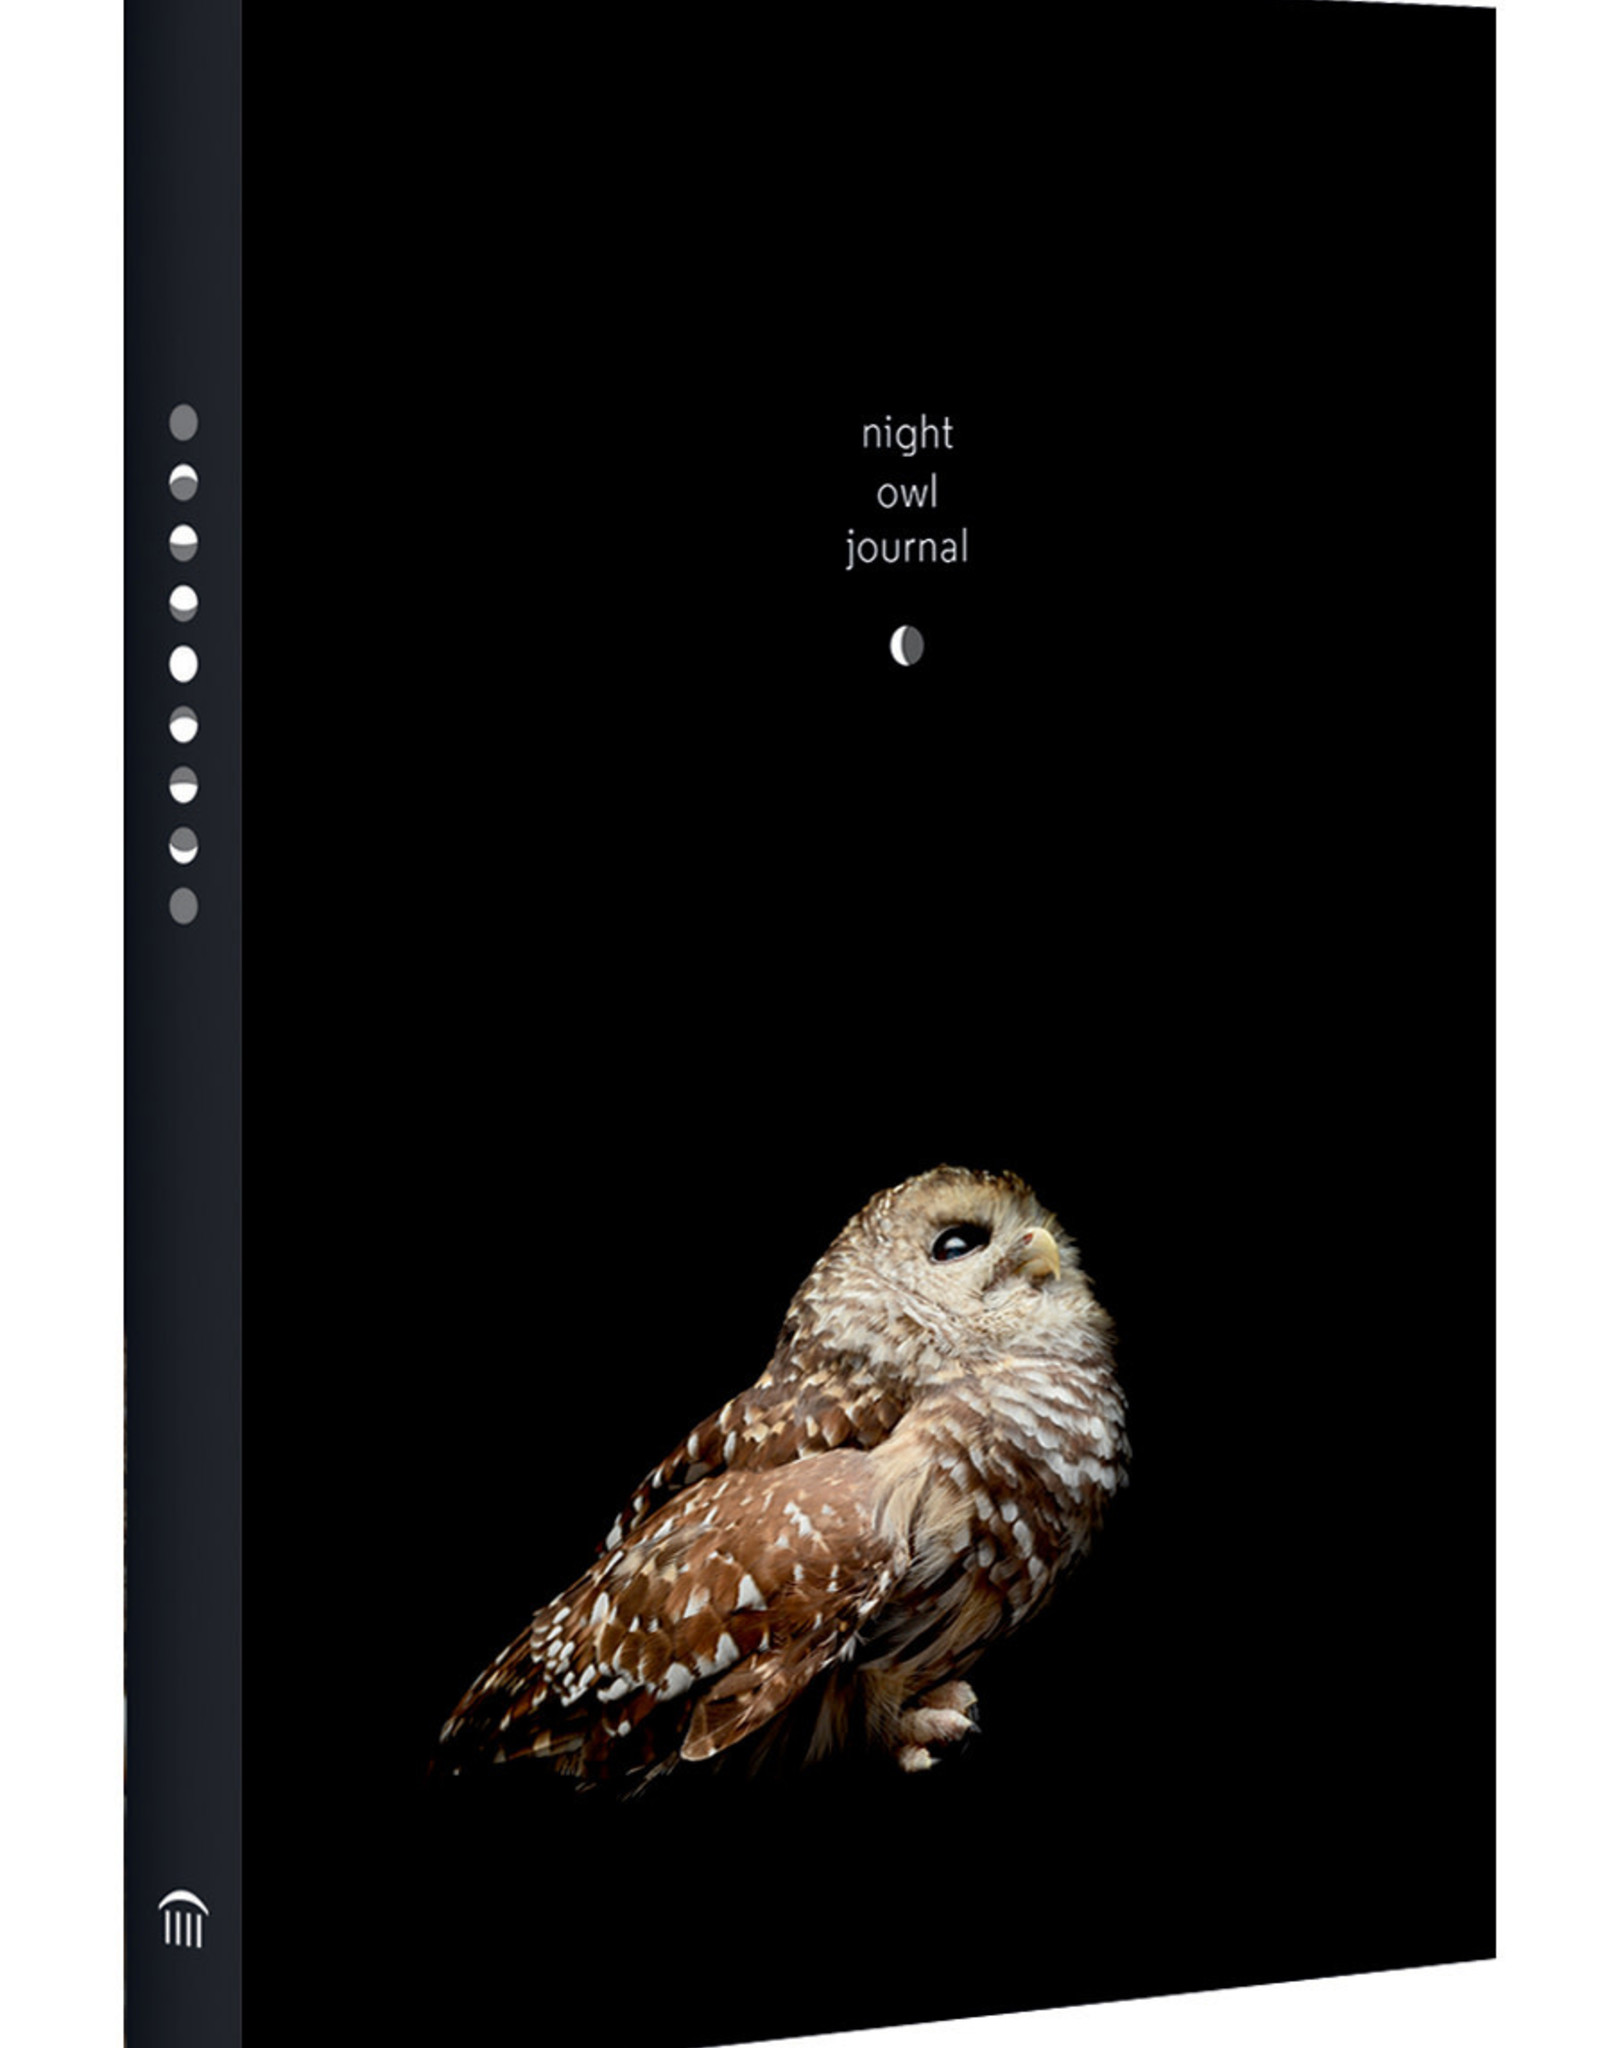 Night Owl Journal by Traer Scott